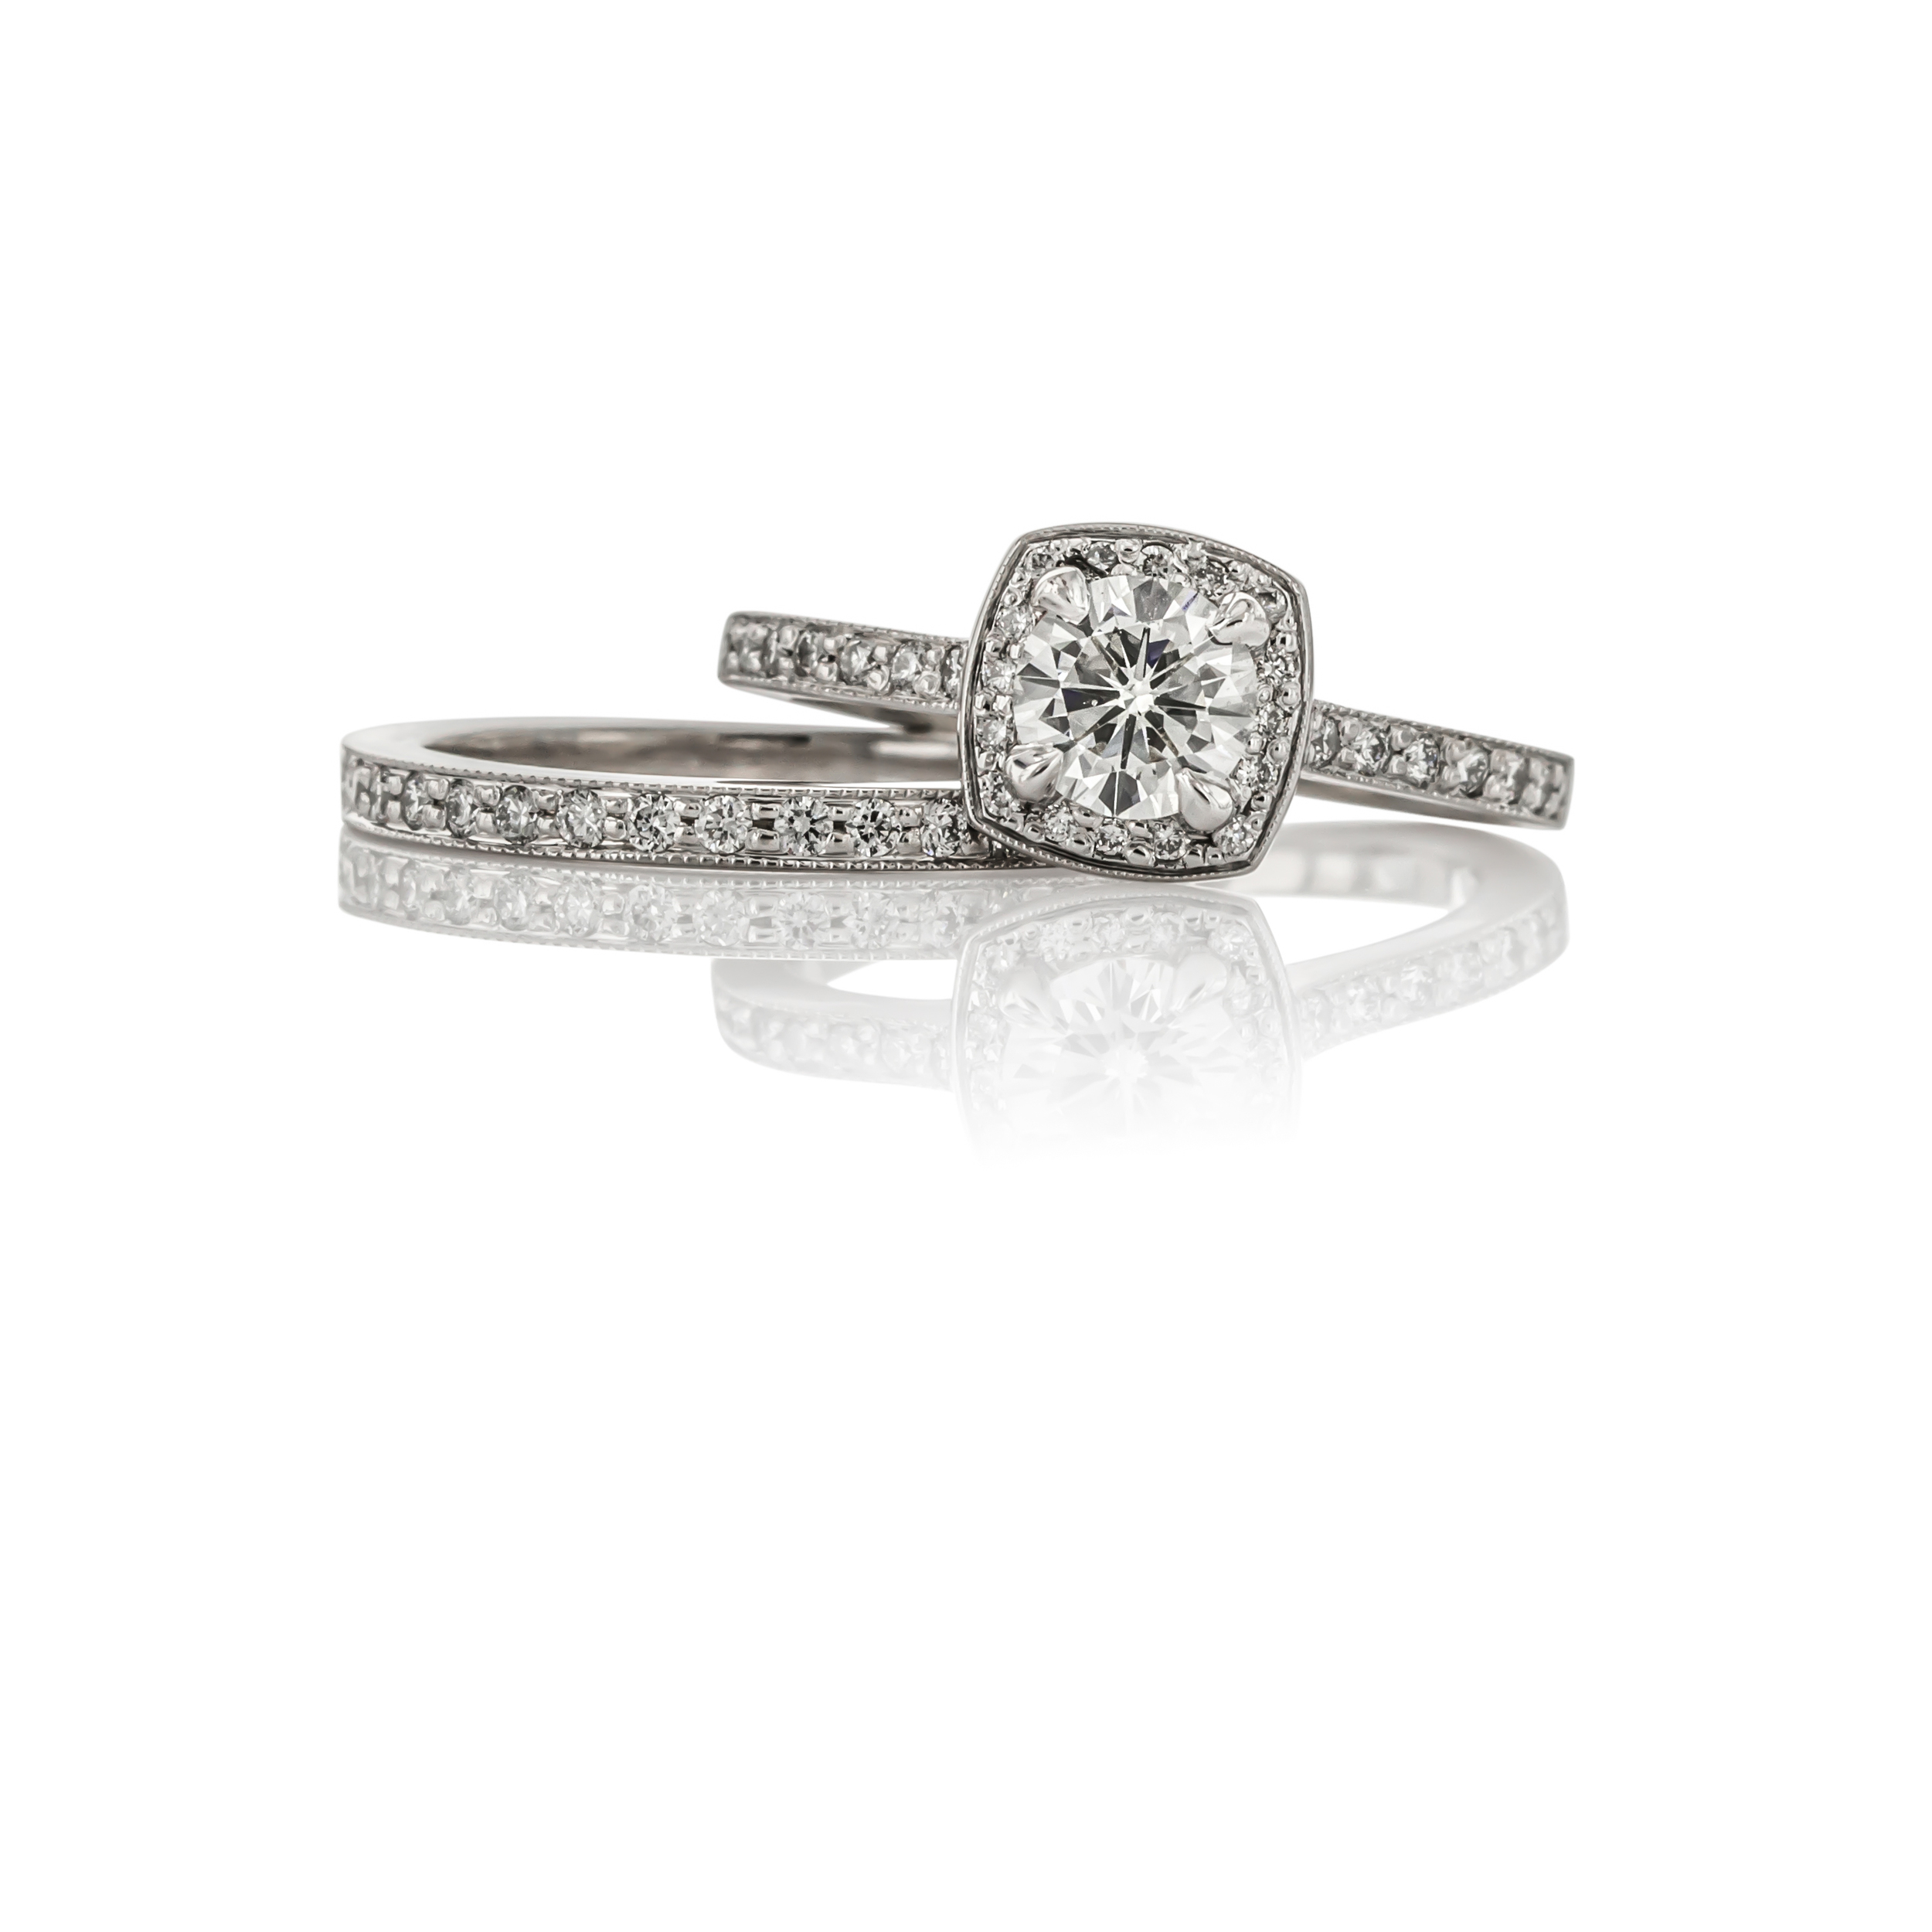 CUSTOM DIAMOND CUSHION SHAPED HALO ENGAGEMENT RING